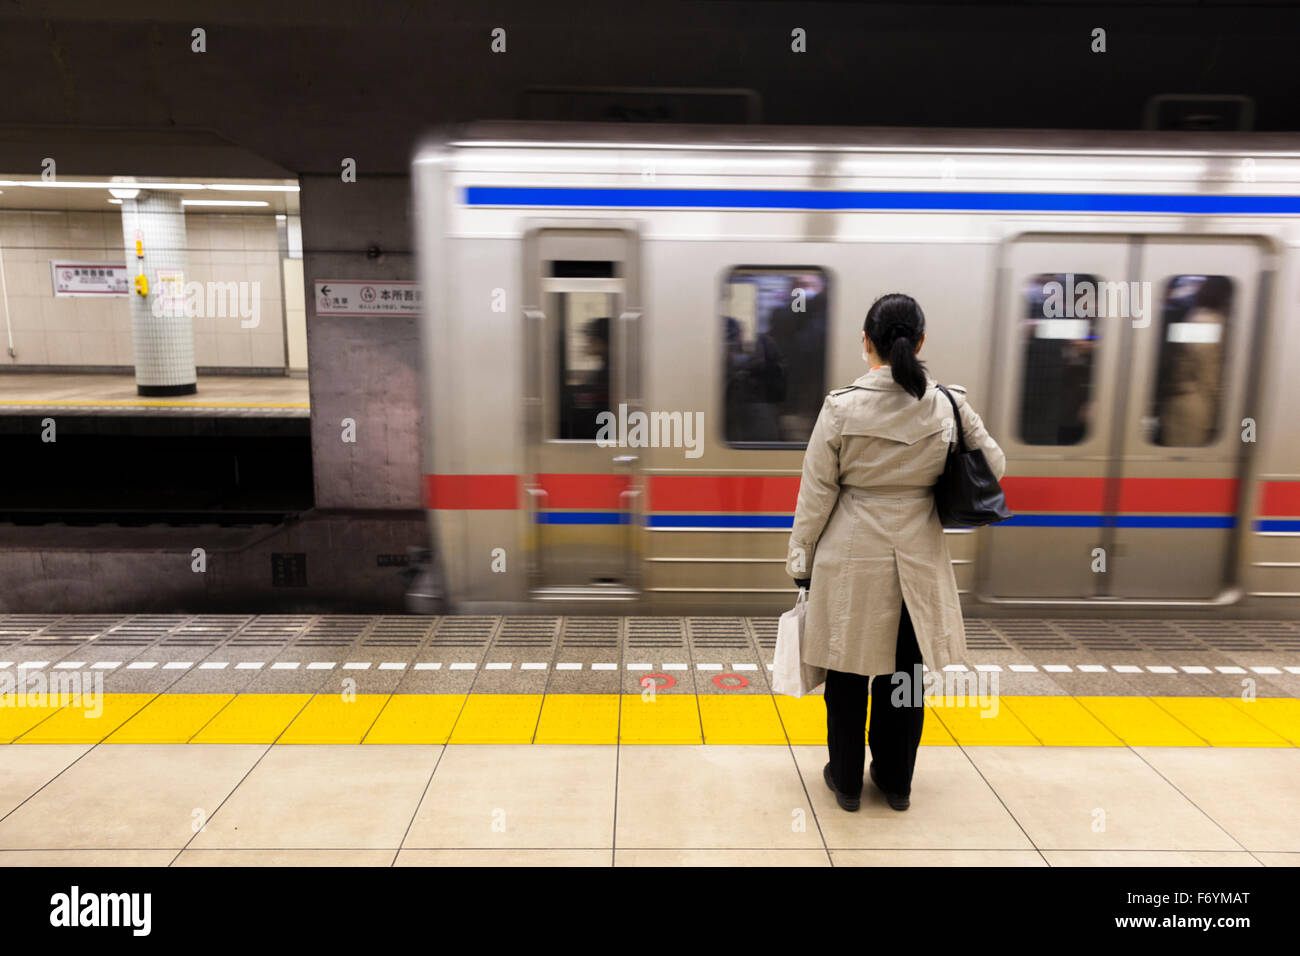 A Japanese woman waiting in the underground for a passing train - Stock Image